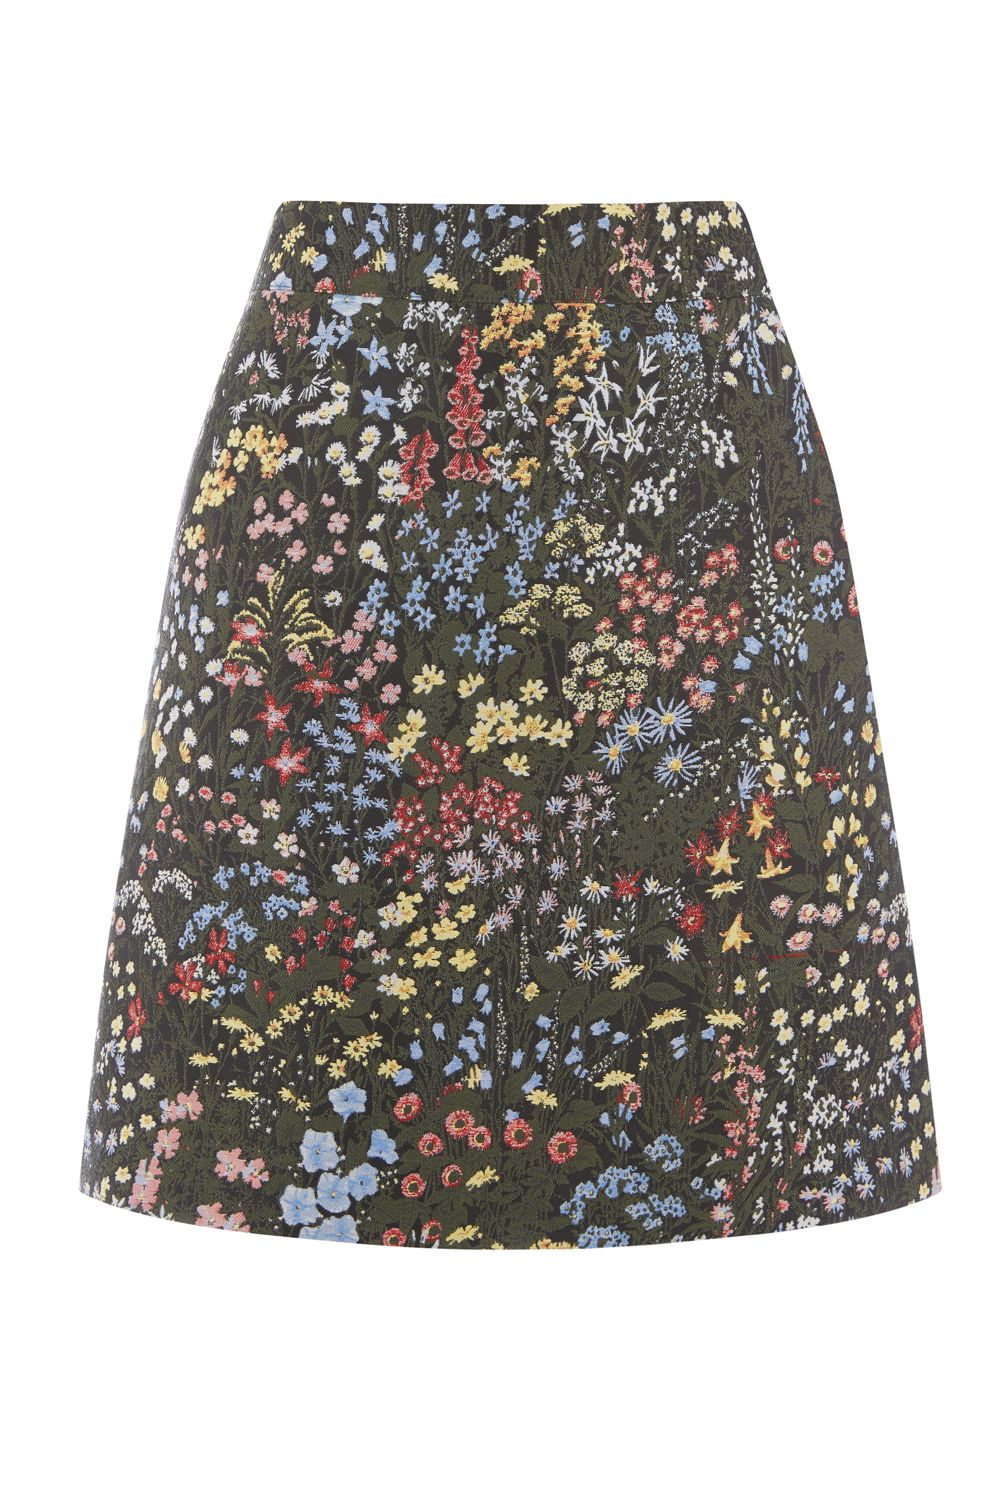 Warehouse Wild Garden Jacquard Skirt, Multi-Coloured